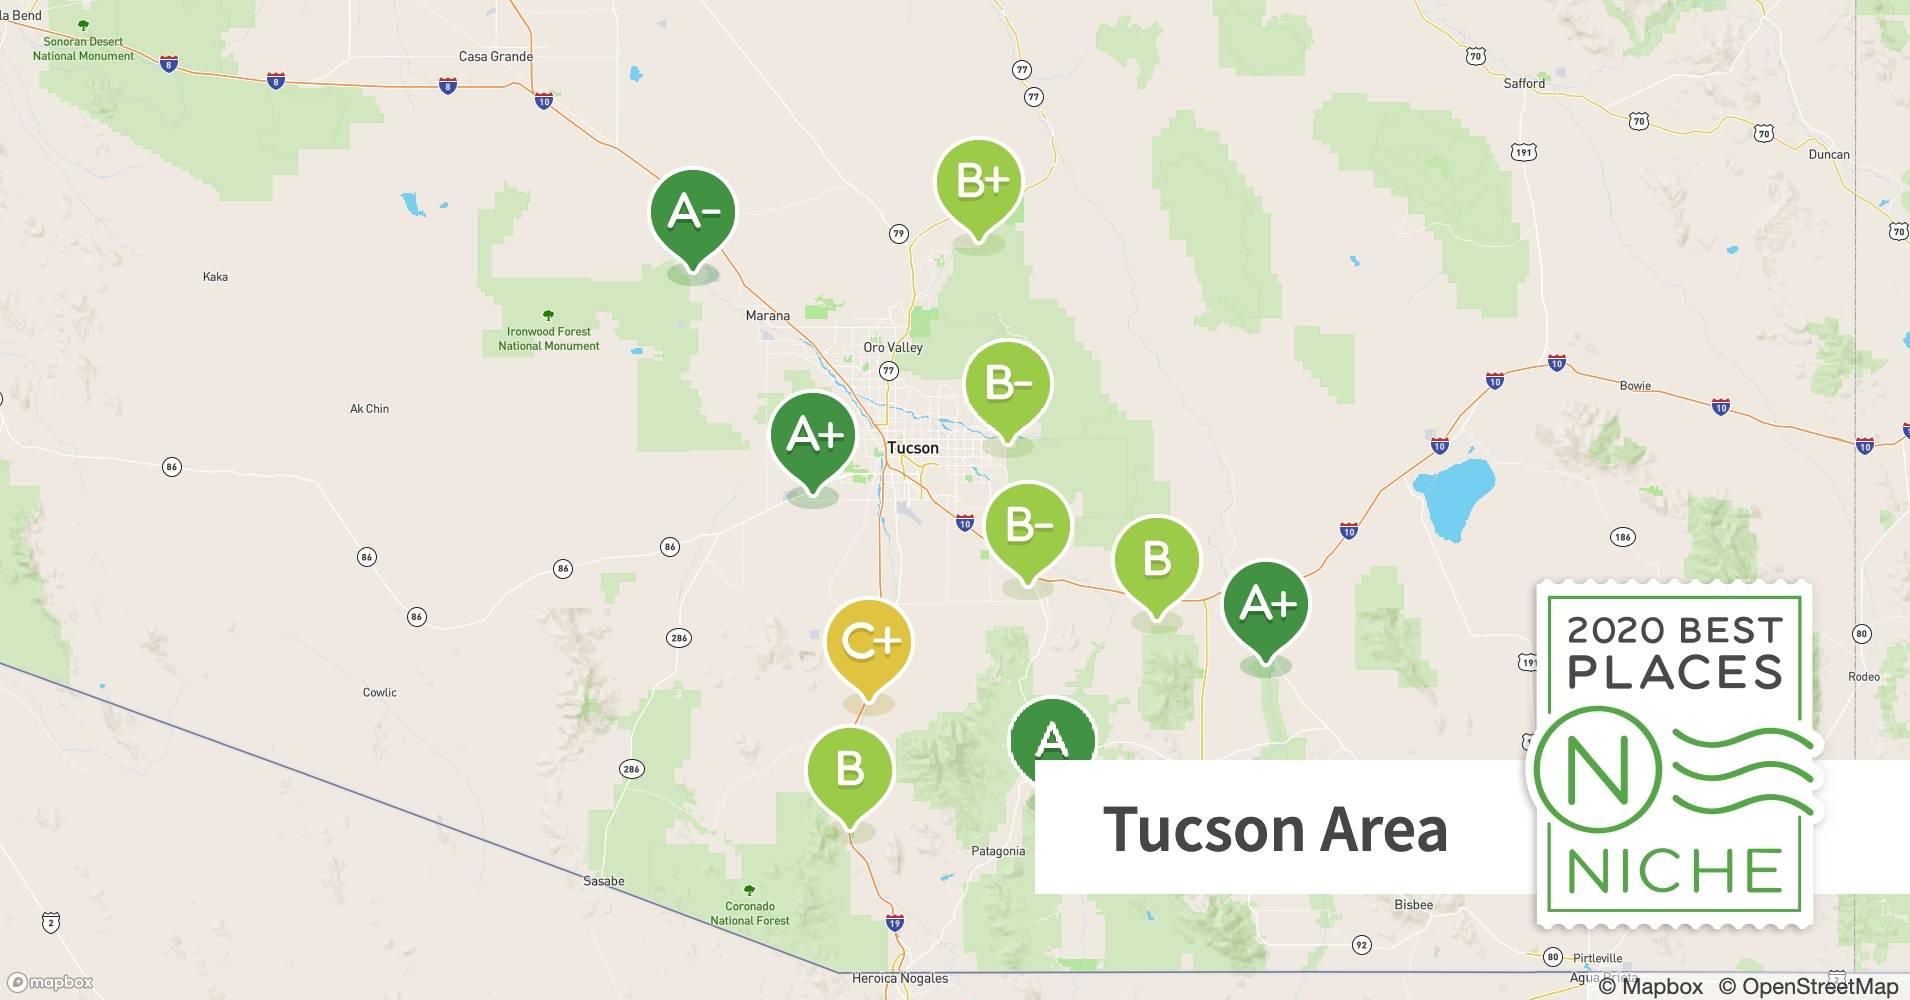 2020 Best Places To Live In The Tucson Area Niche